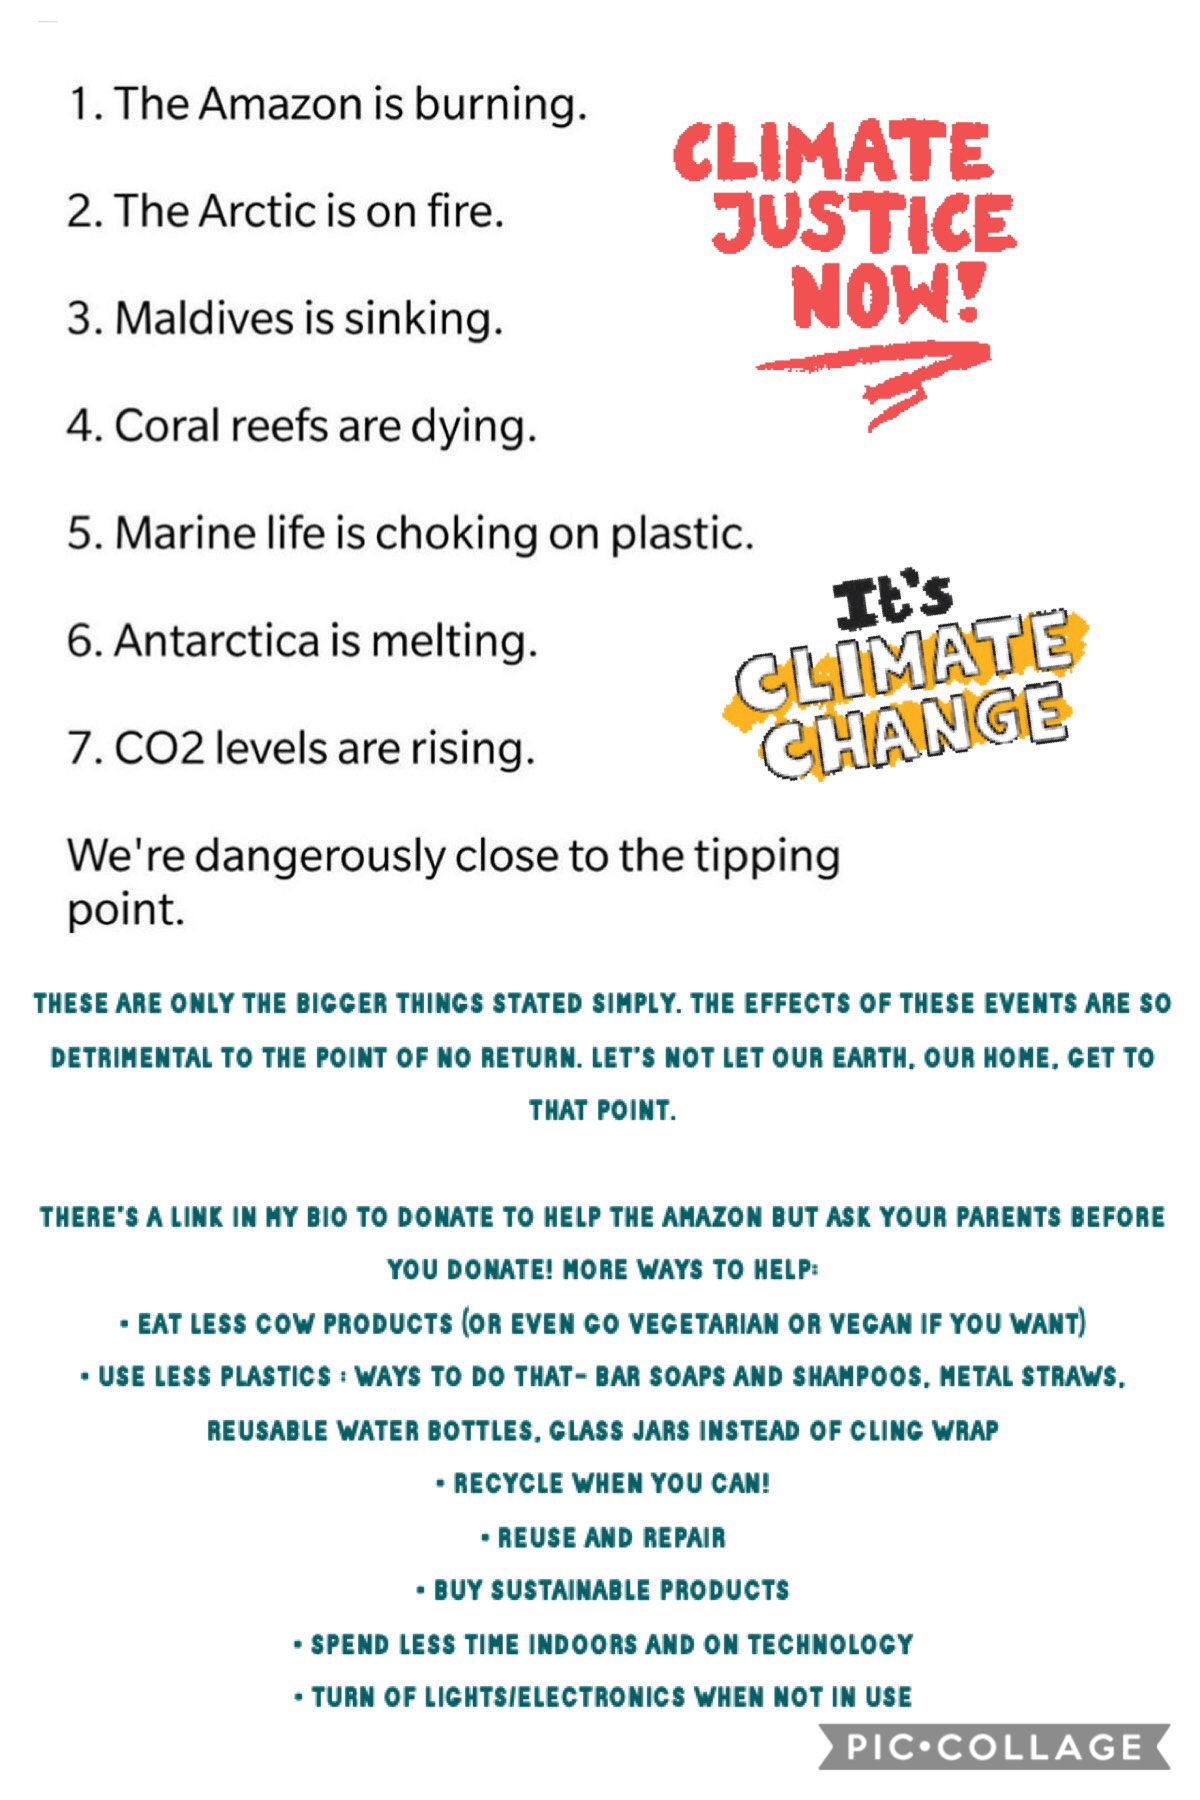 comment your own ways you are combatting climate change! you do not have to do all of these, but try to do as much as you can. we need more people living sustainably imperfectly than a few living sustainably perfectly